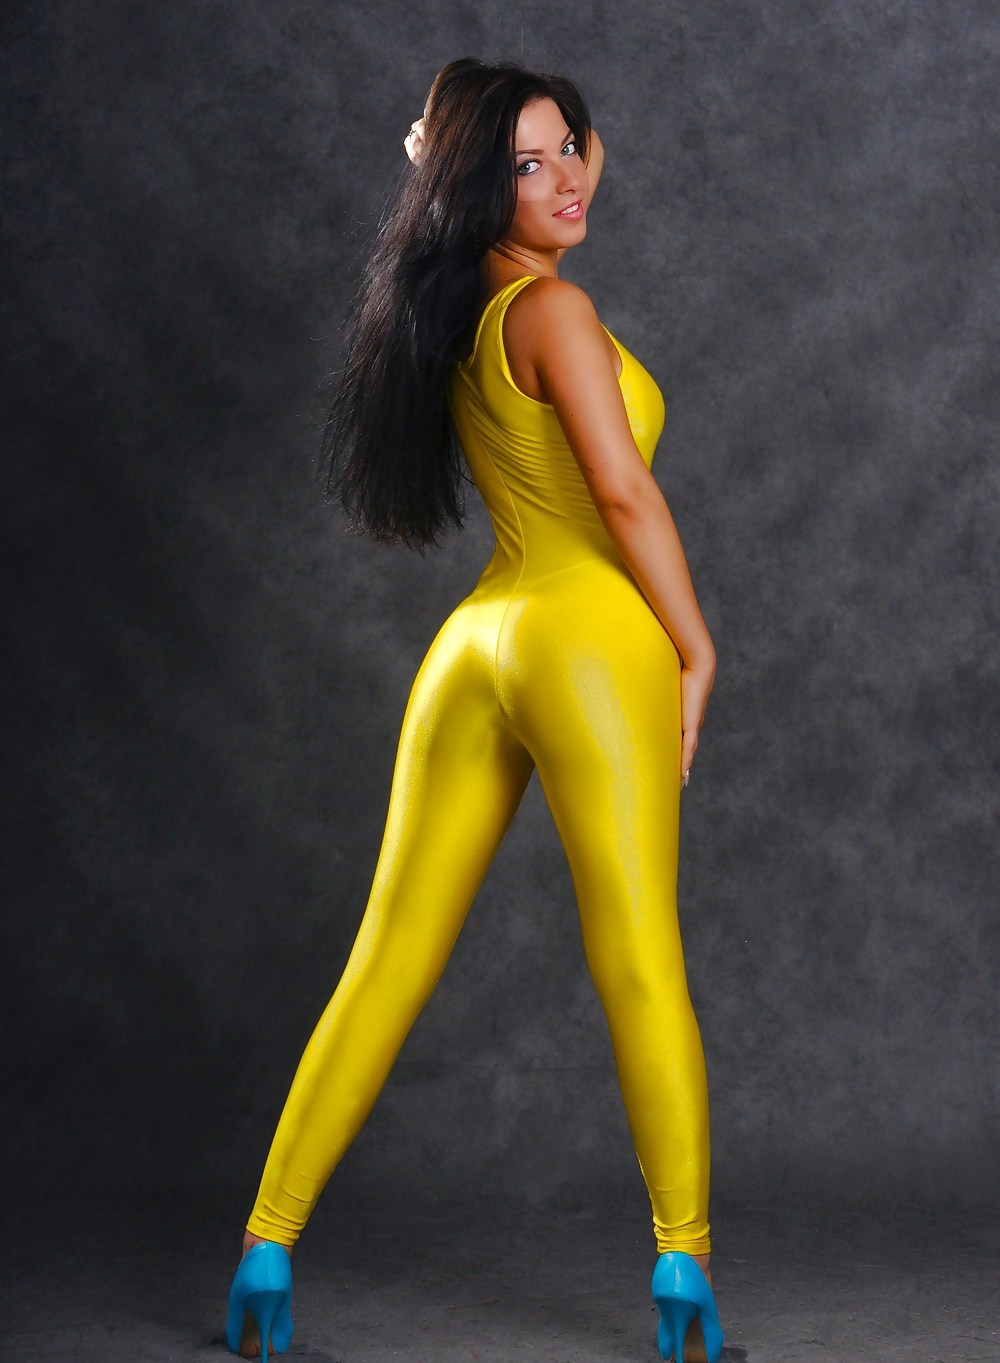 Naked girls and spandex, world s tall girl in action sex videos